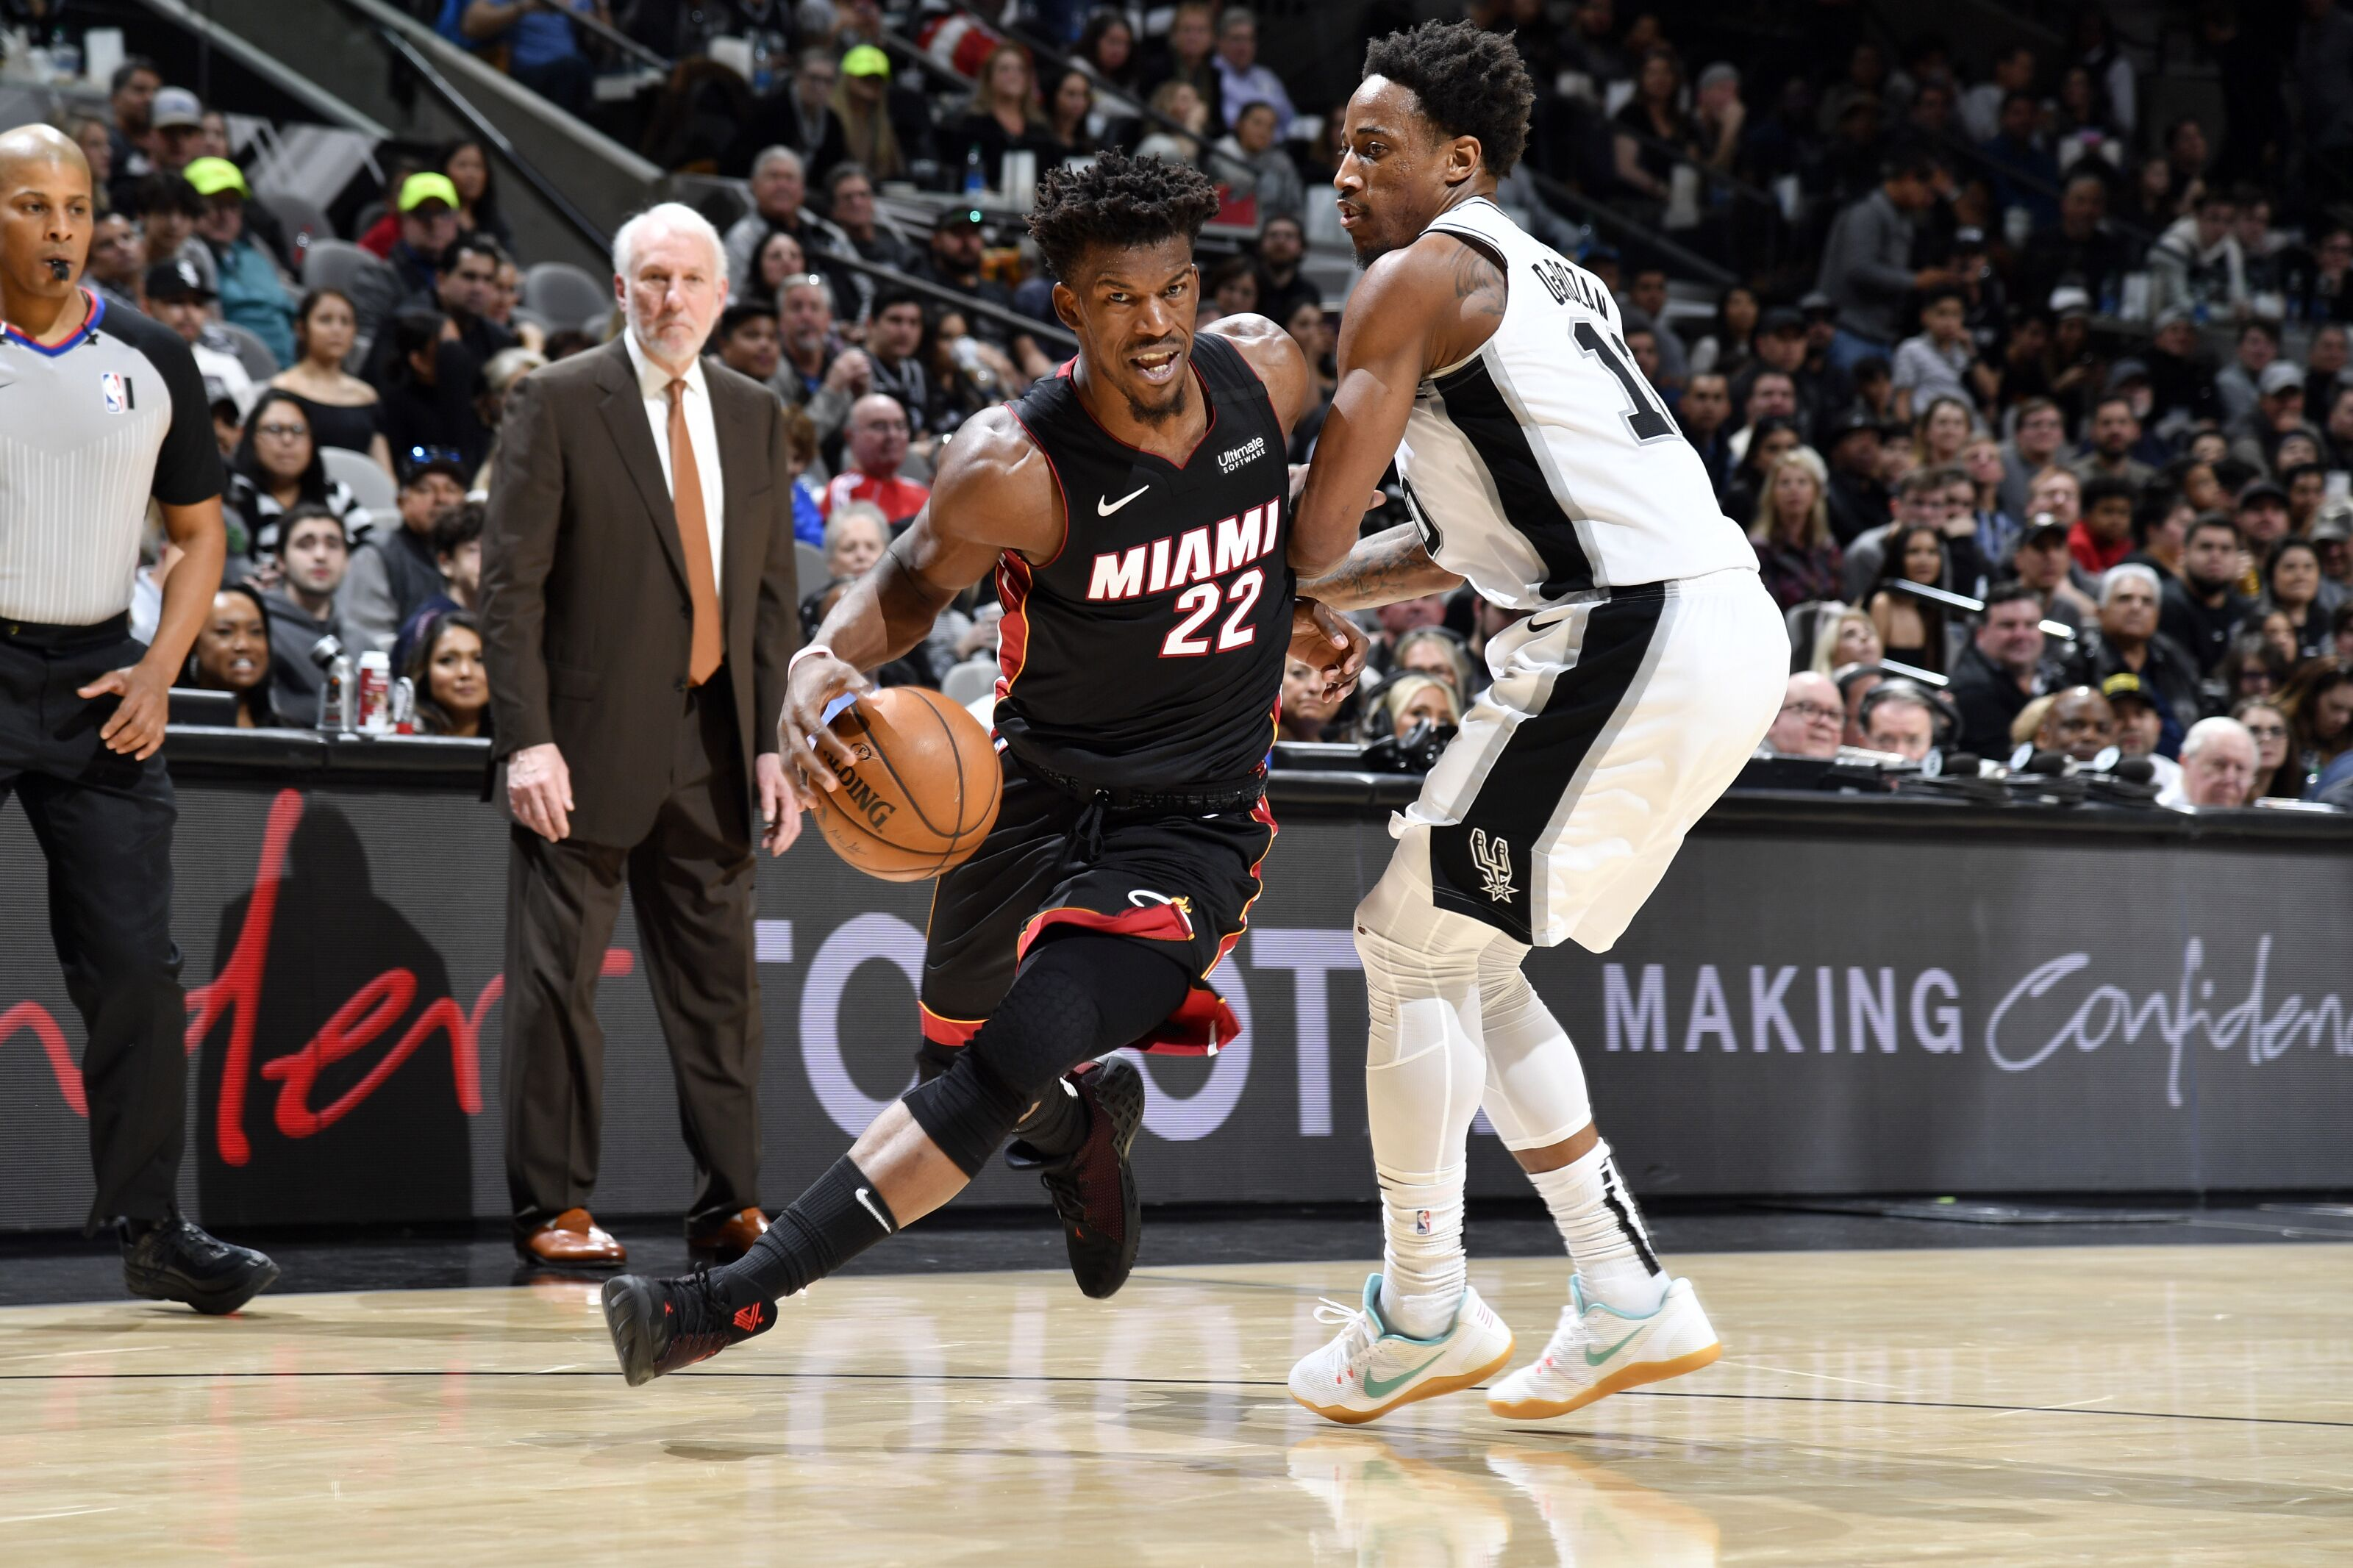 The Miami Heat also lose battle of intensity in loss to San Antonio Spurs